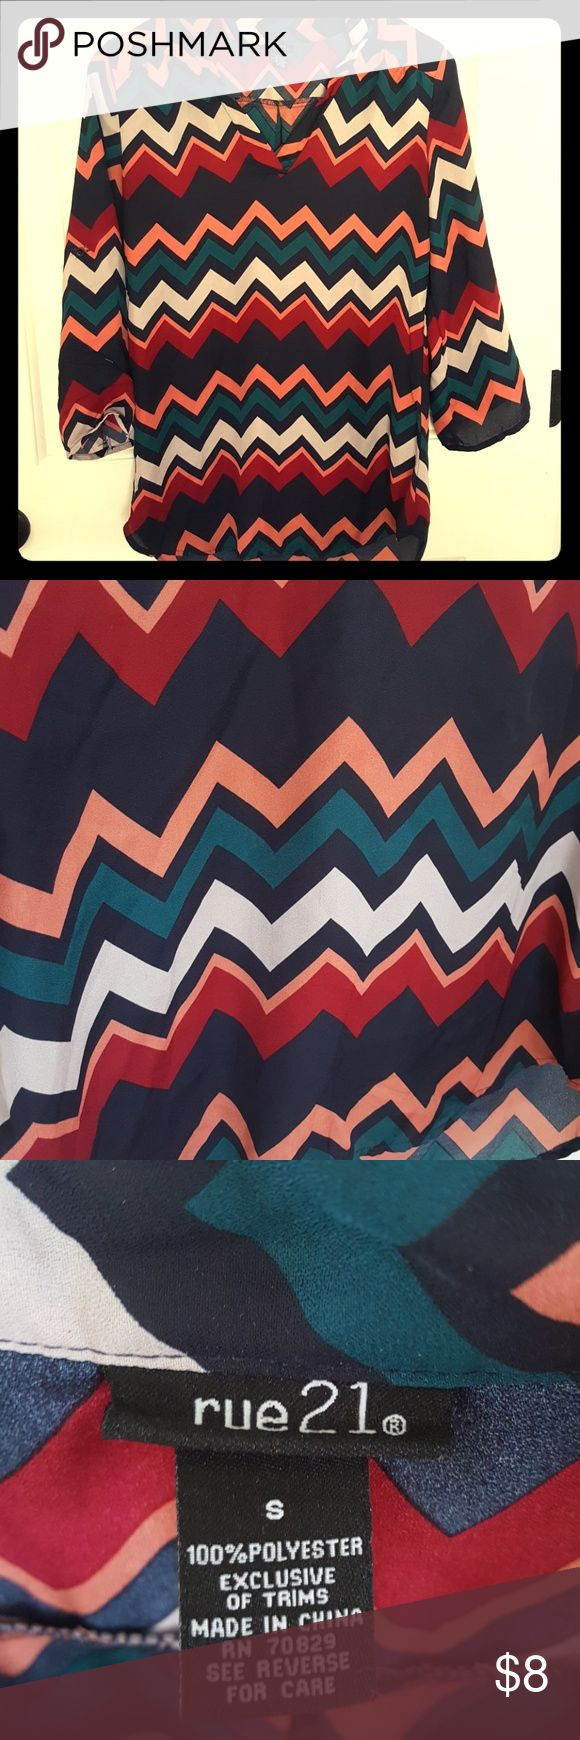 Rue 21 3/4 sleeve chevron top EUC small rue 21 polyester top. Navy with bold chevron print in peach, red, white and Mediterranean blue. Can be worn with jeans, dress pants, leggings. Very versatile! Be sure to SHOP my closet for matching items. ☆ITEMS ADDED DAILY☆BUNDLE AND SAVE☆  See something you like? ☆☆MAKE AN OFFER!☆☆ Don't forget to LIKE it so you can GRAB it during a SHIPPING DISCOUNT or PRICE DROP!  I'm happy to answer any questions you may have. Rue 21 Tops